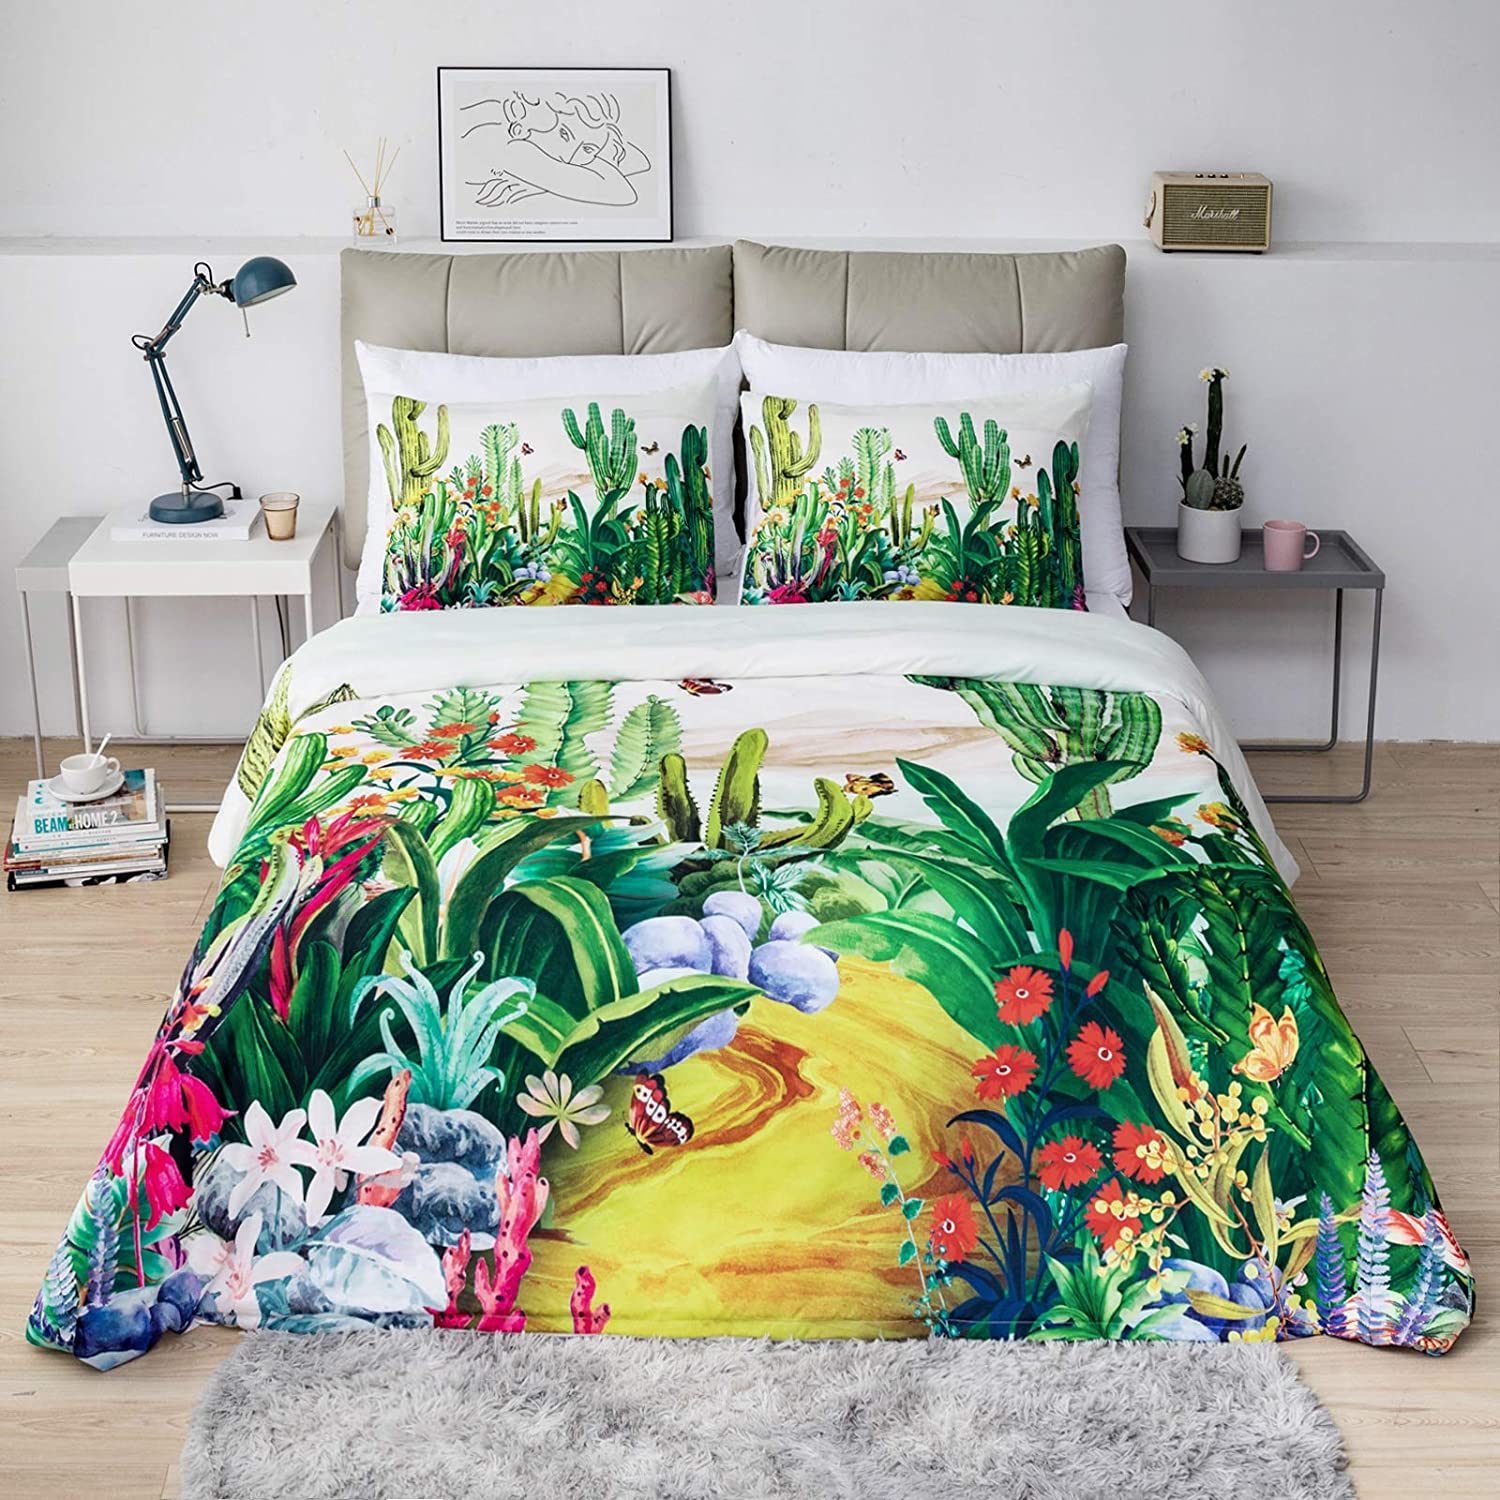 Branch and Plum Blossom Pattern Bedding Set 1 Duvet Cover and 2 Pillow Covers Argstar 3 Pcs King Duvet Covers Navy Blue Floral Comforter Cover with Zipper Ties Ultra Soft Lightweight Microfiber